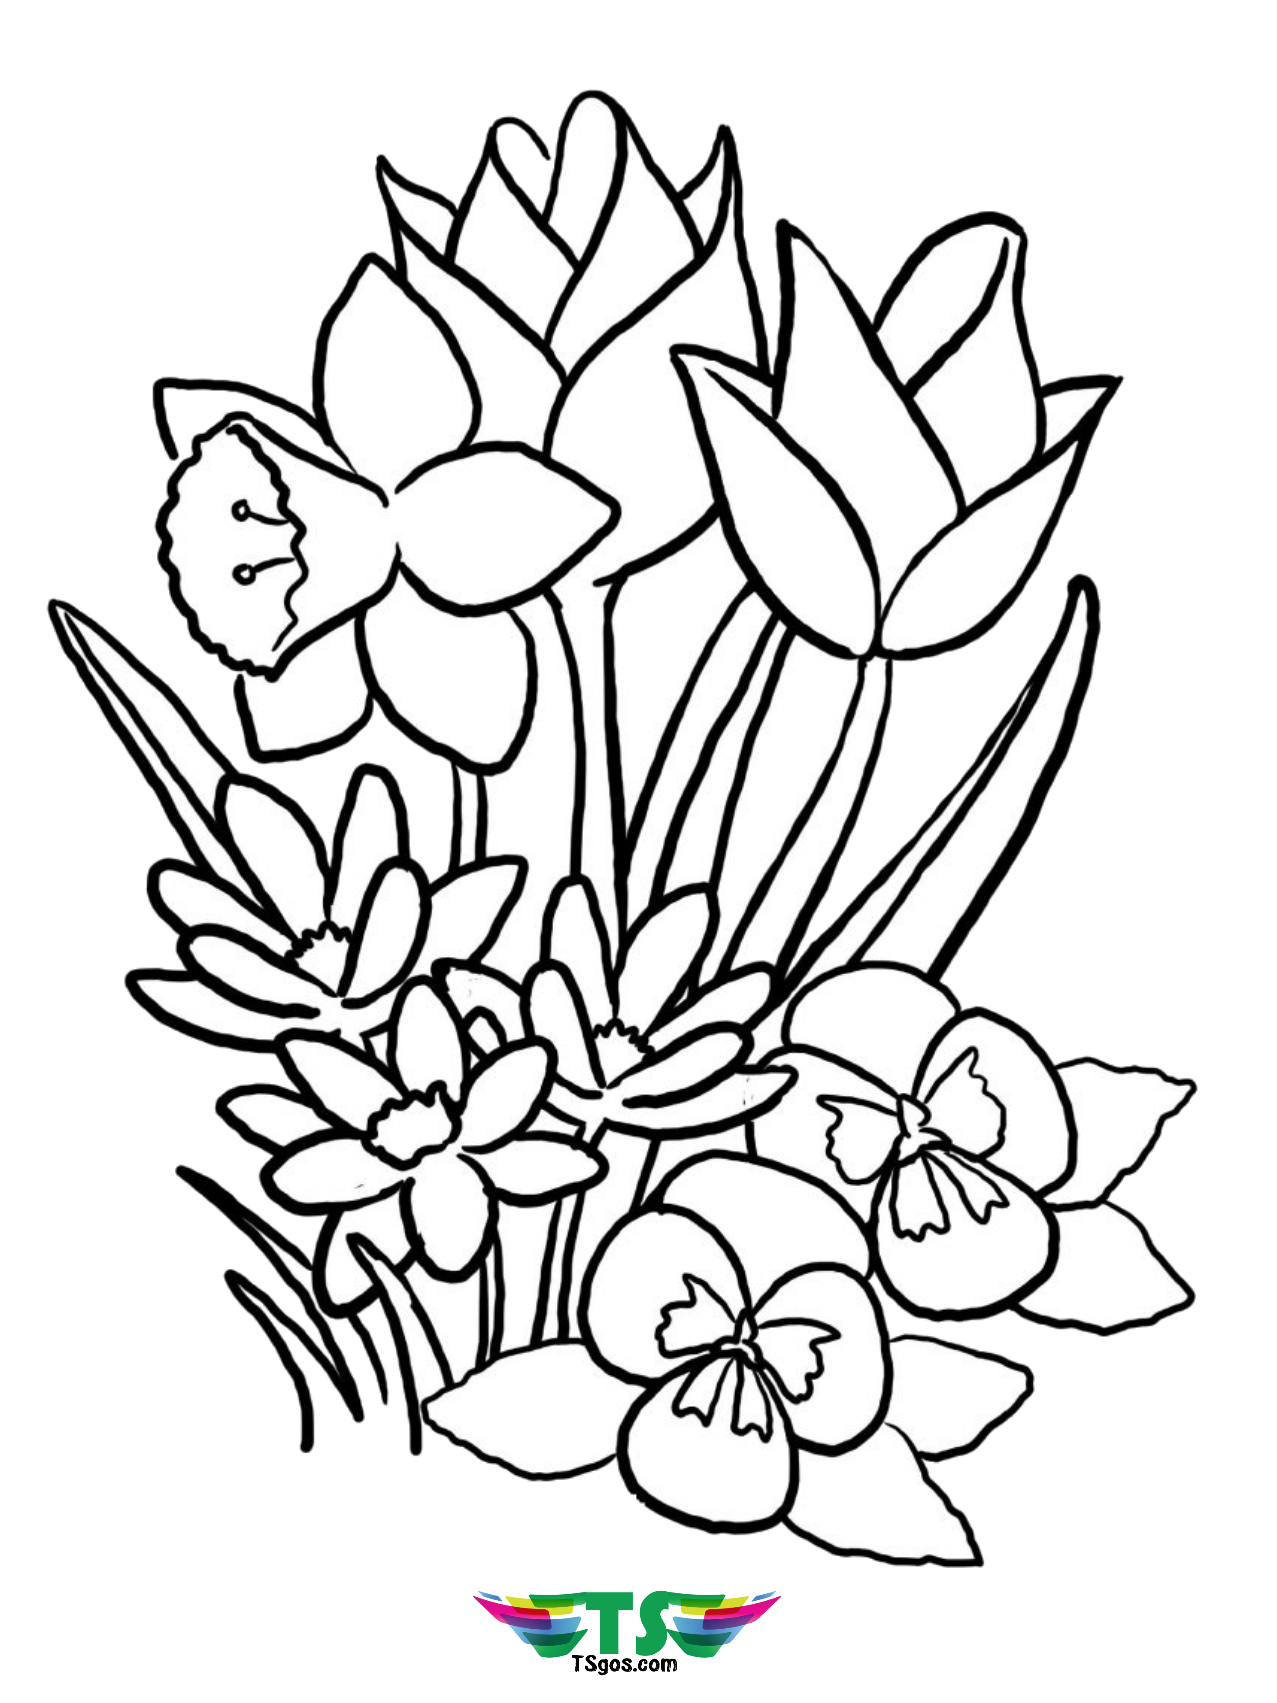 free downloadable coloring pages free printable panda coloring pages for kids free coloring pages downloadable